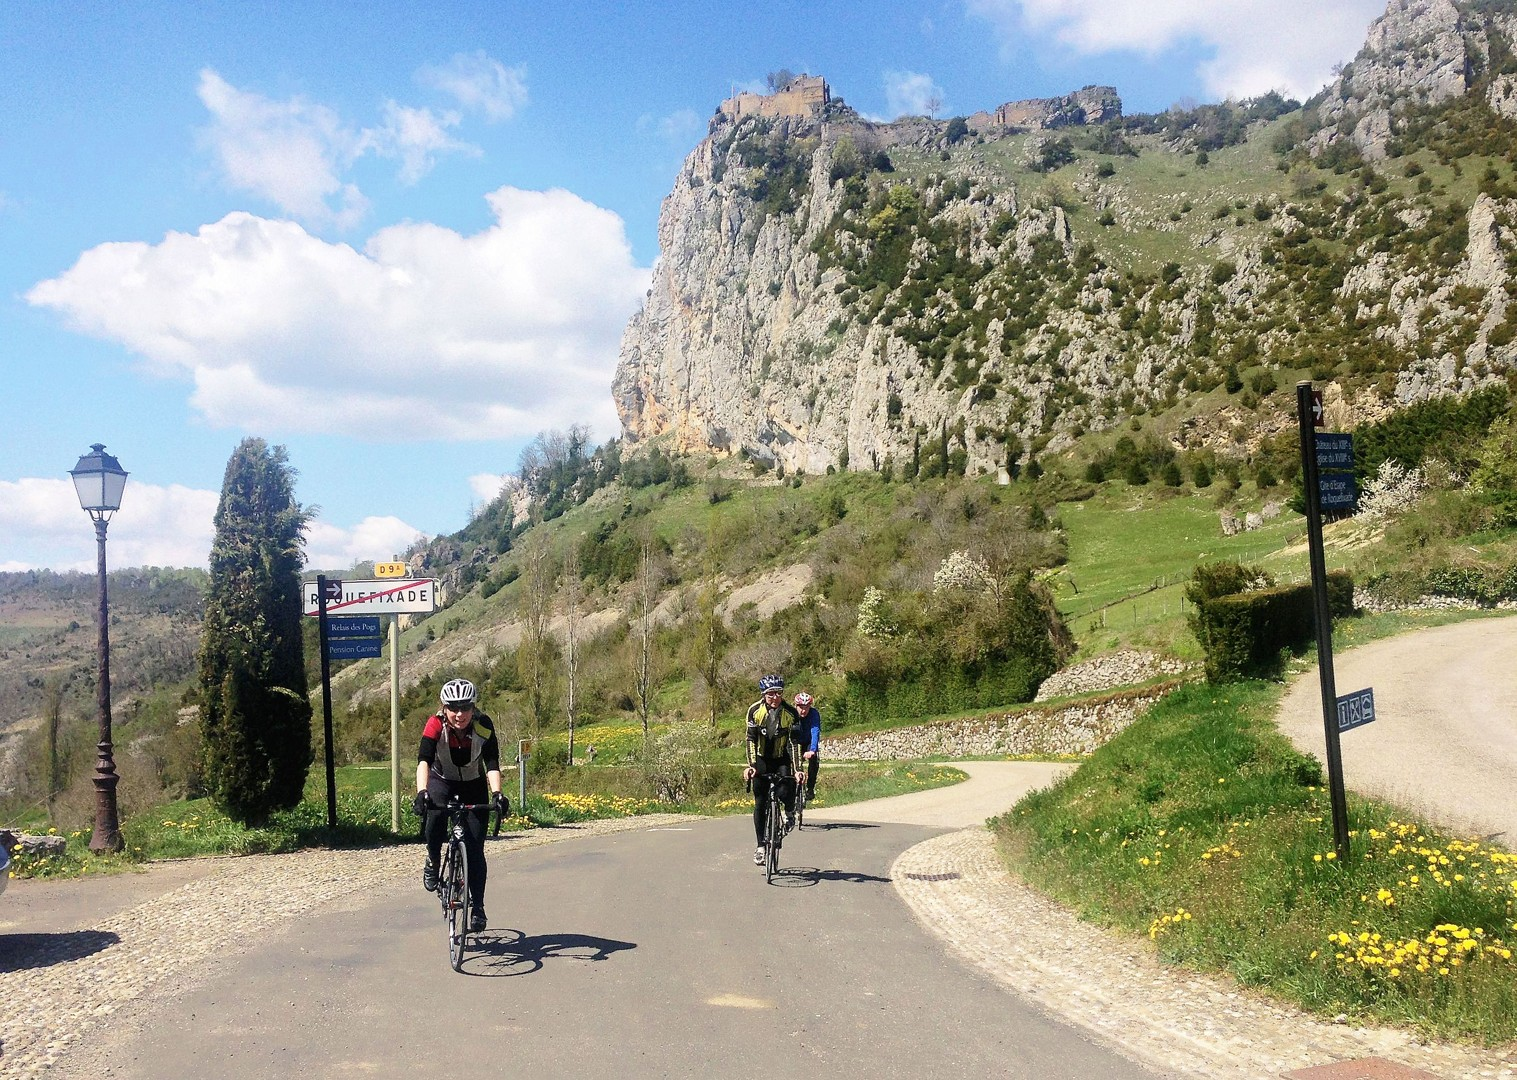 group-cycling-pyrenees-fitness-week.jpg - France - Pyrenees Fitness Week - Guided Road Cycling Holiday (Grade 3-4) - Road Cycling